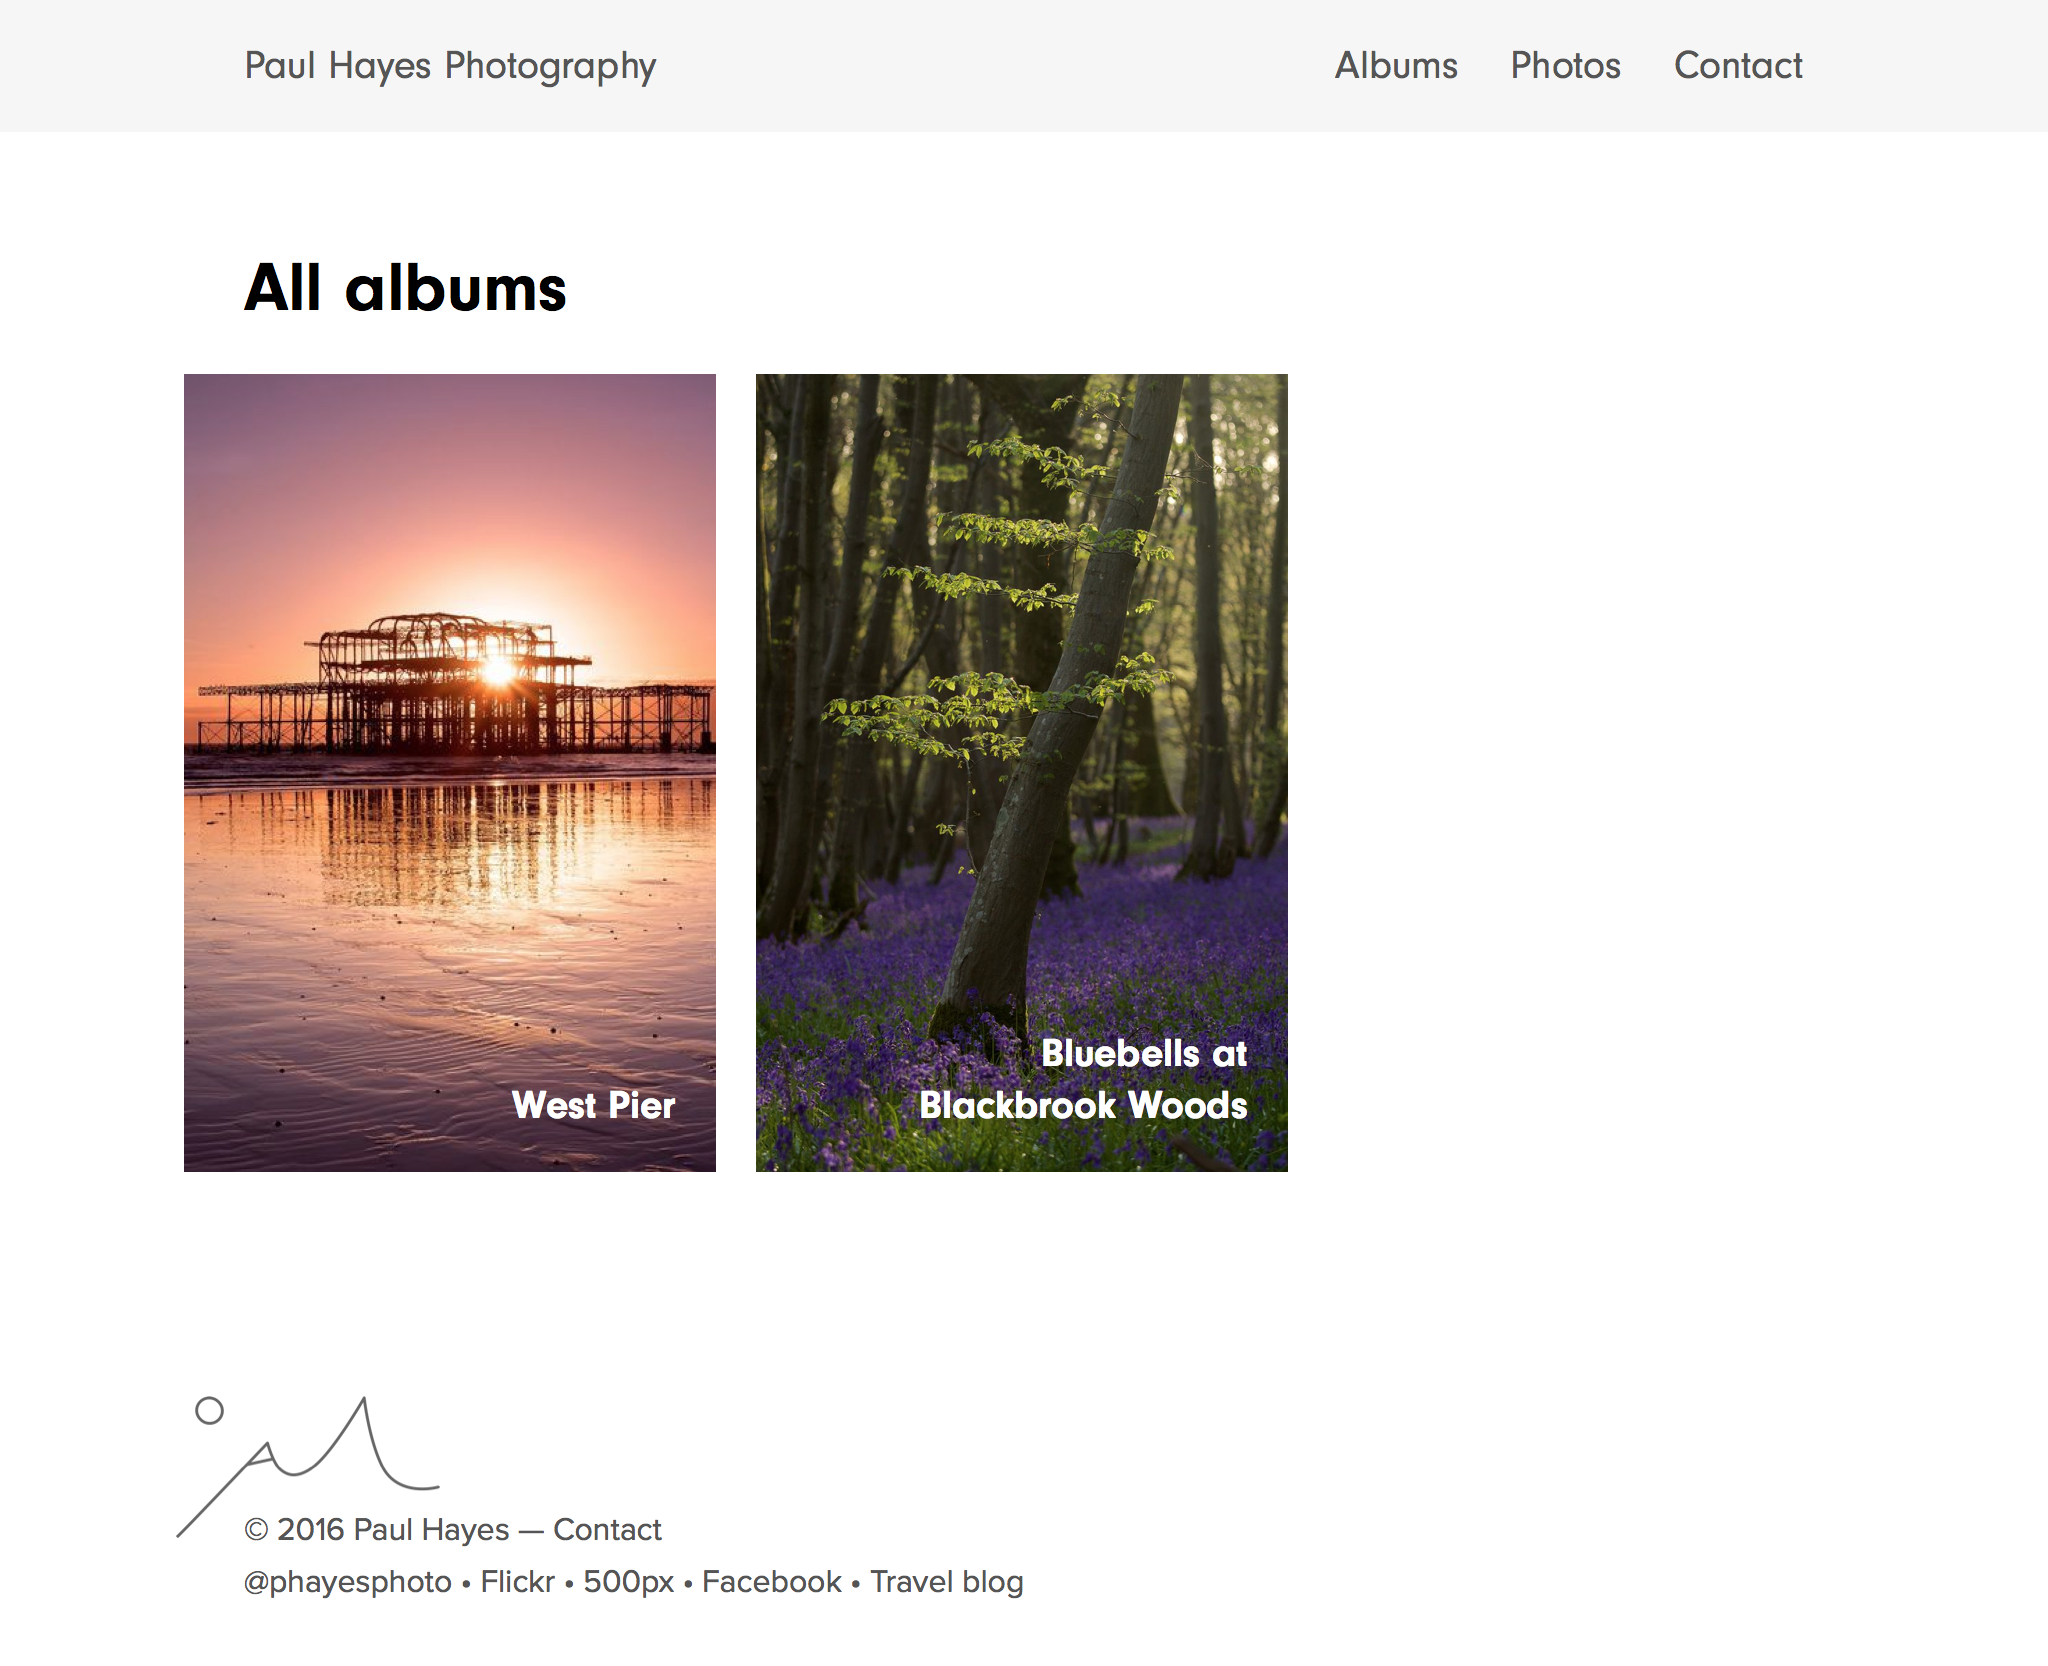 paulhayes-photography-albums